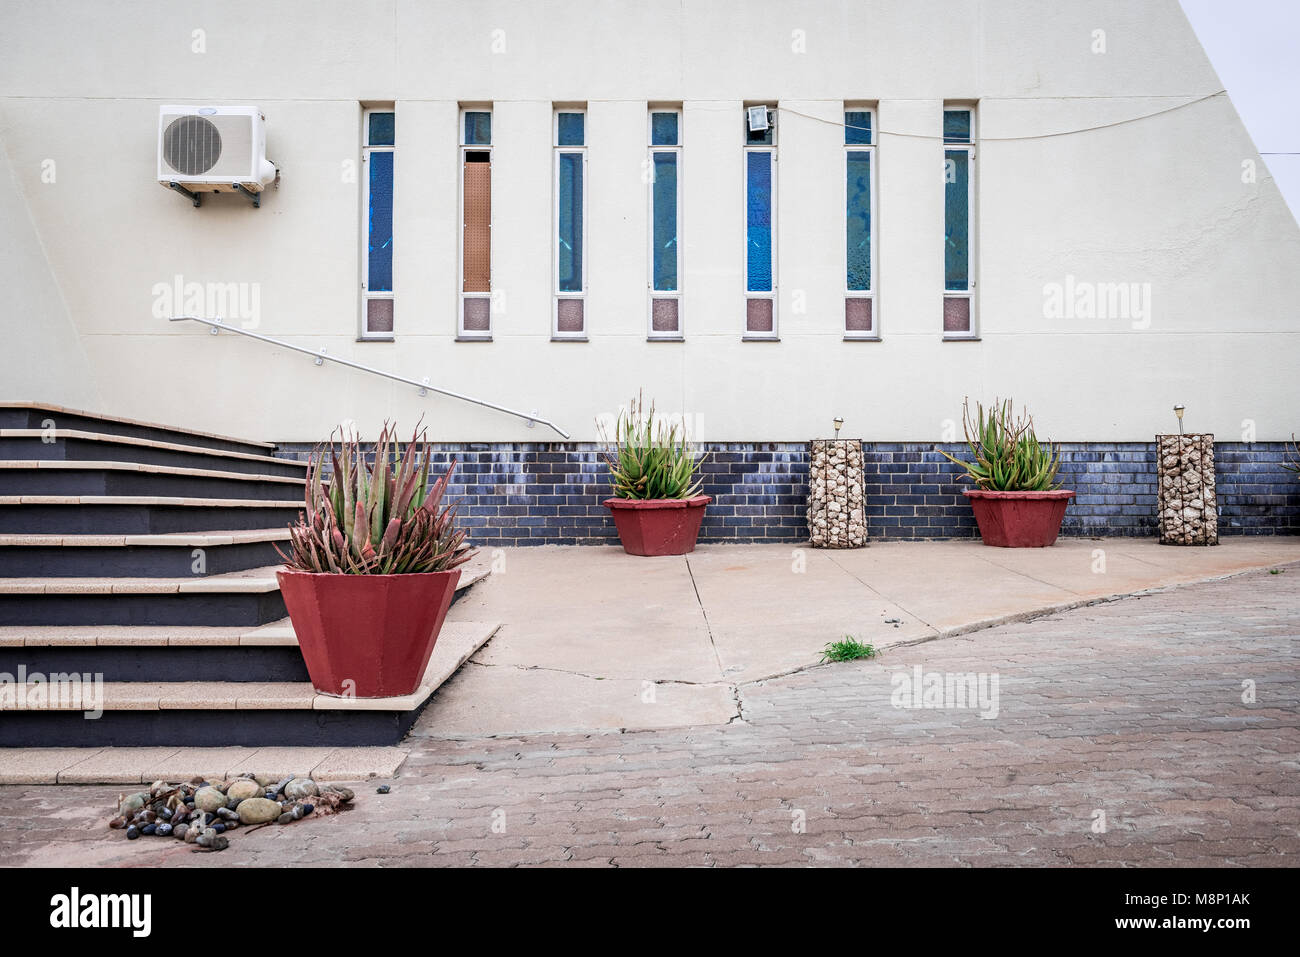 A detail of the entrance to the NGK church in Van Zylrus that dominates the small town in South Africa's Northern - Stock Image